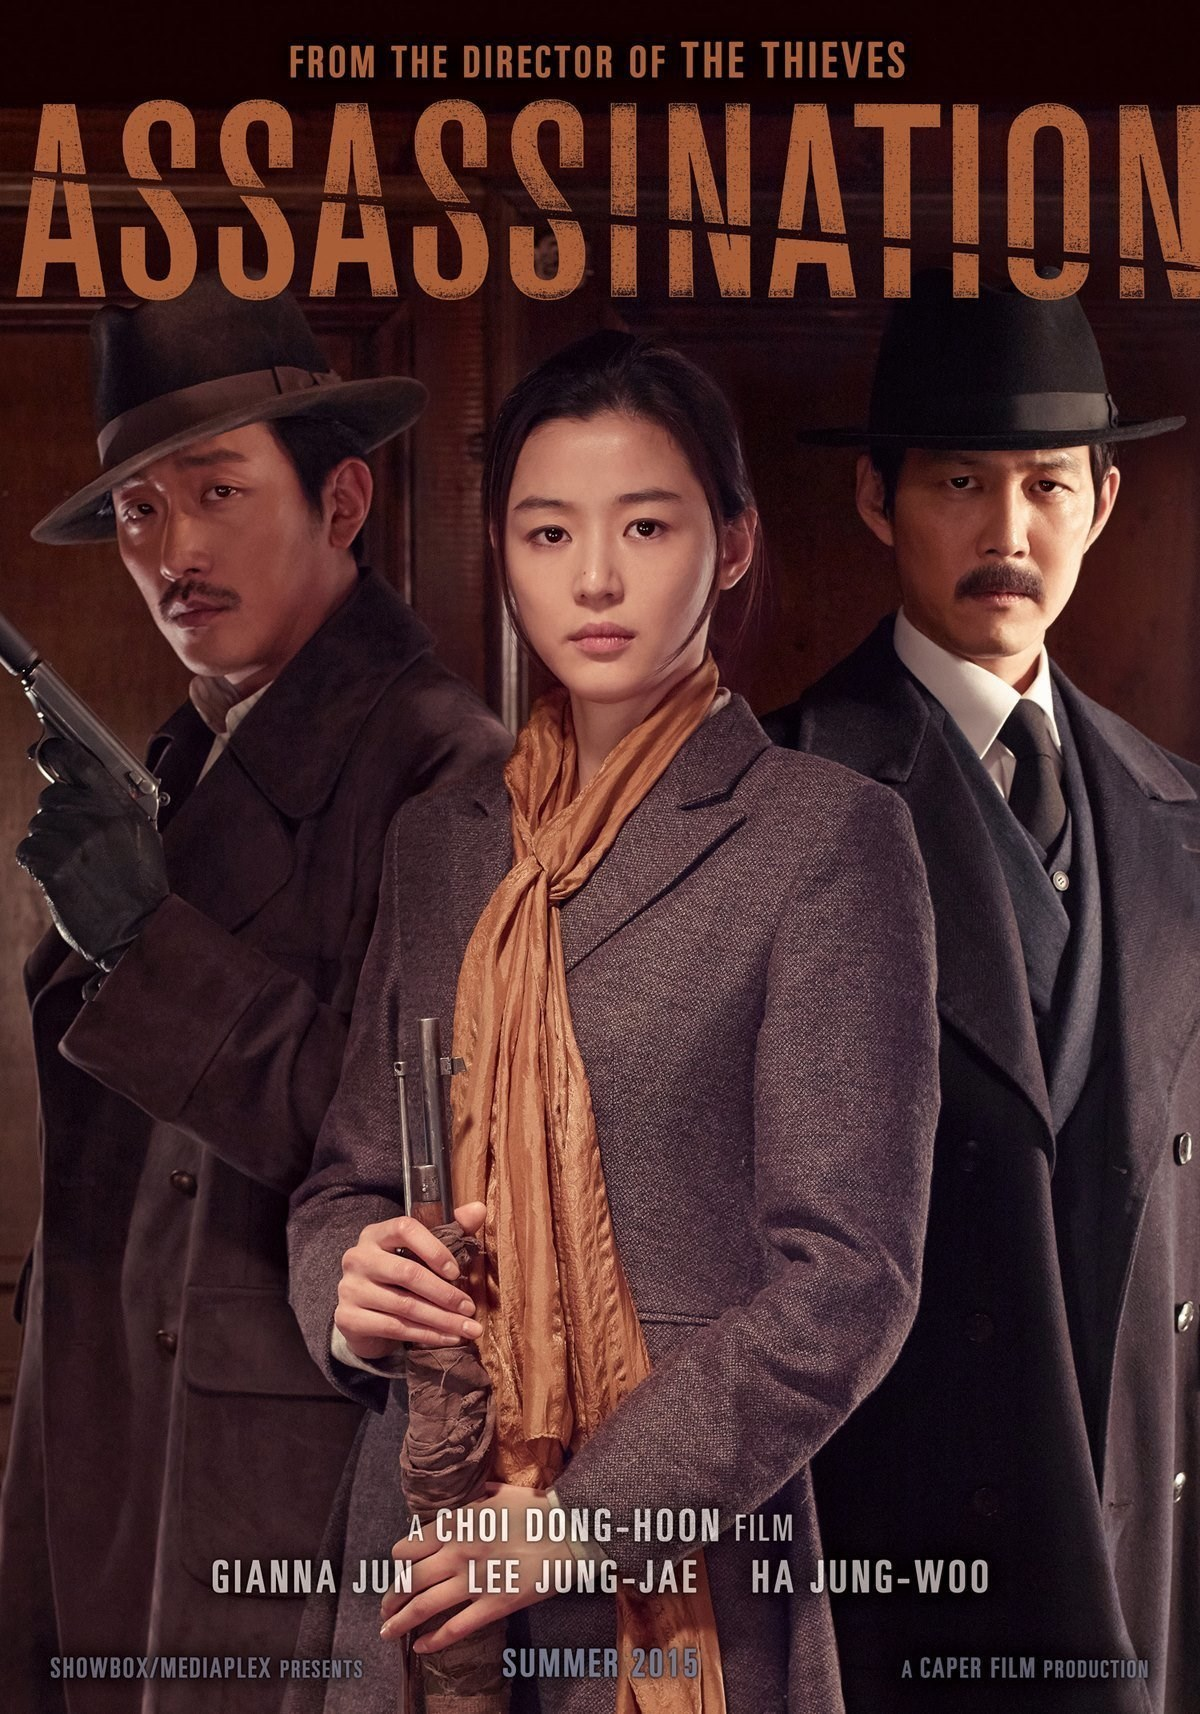 Assassination / Amsal (2015)